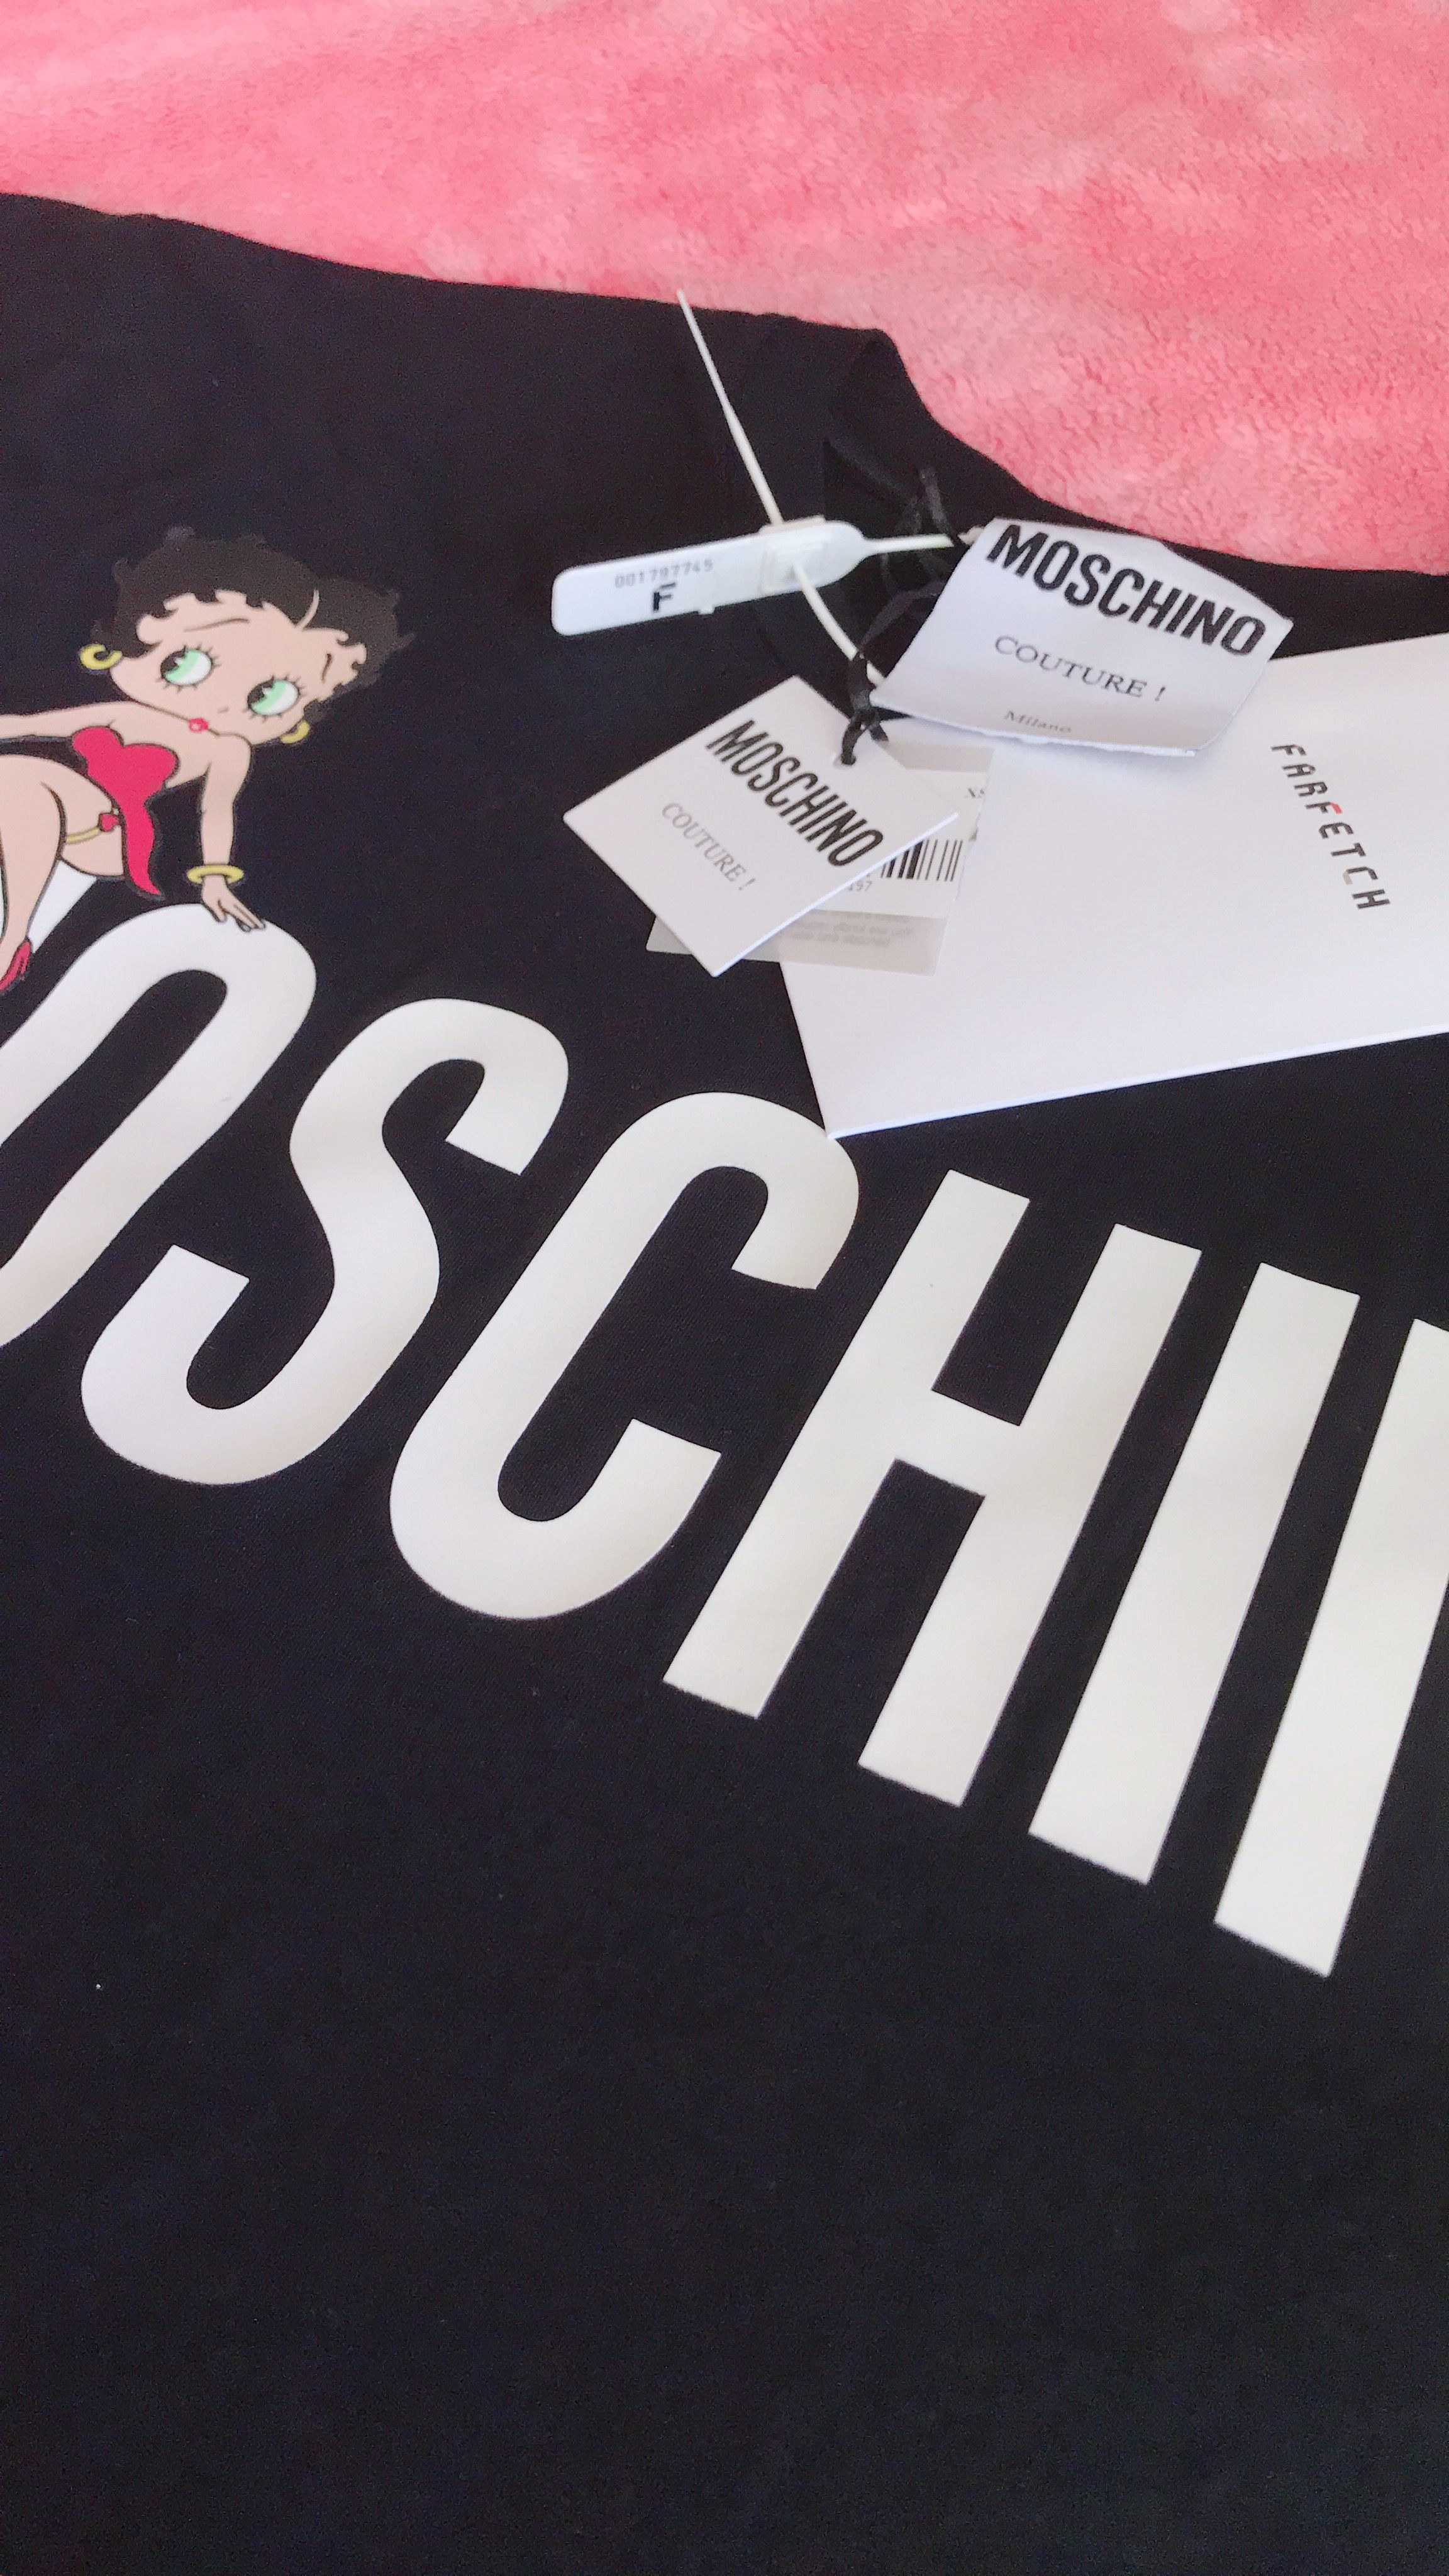 a526d266 MOSCHINO Betty Boop t-shirt from Farfetch   Shopping Brandname ...